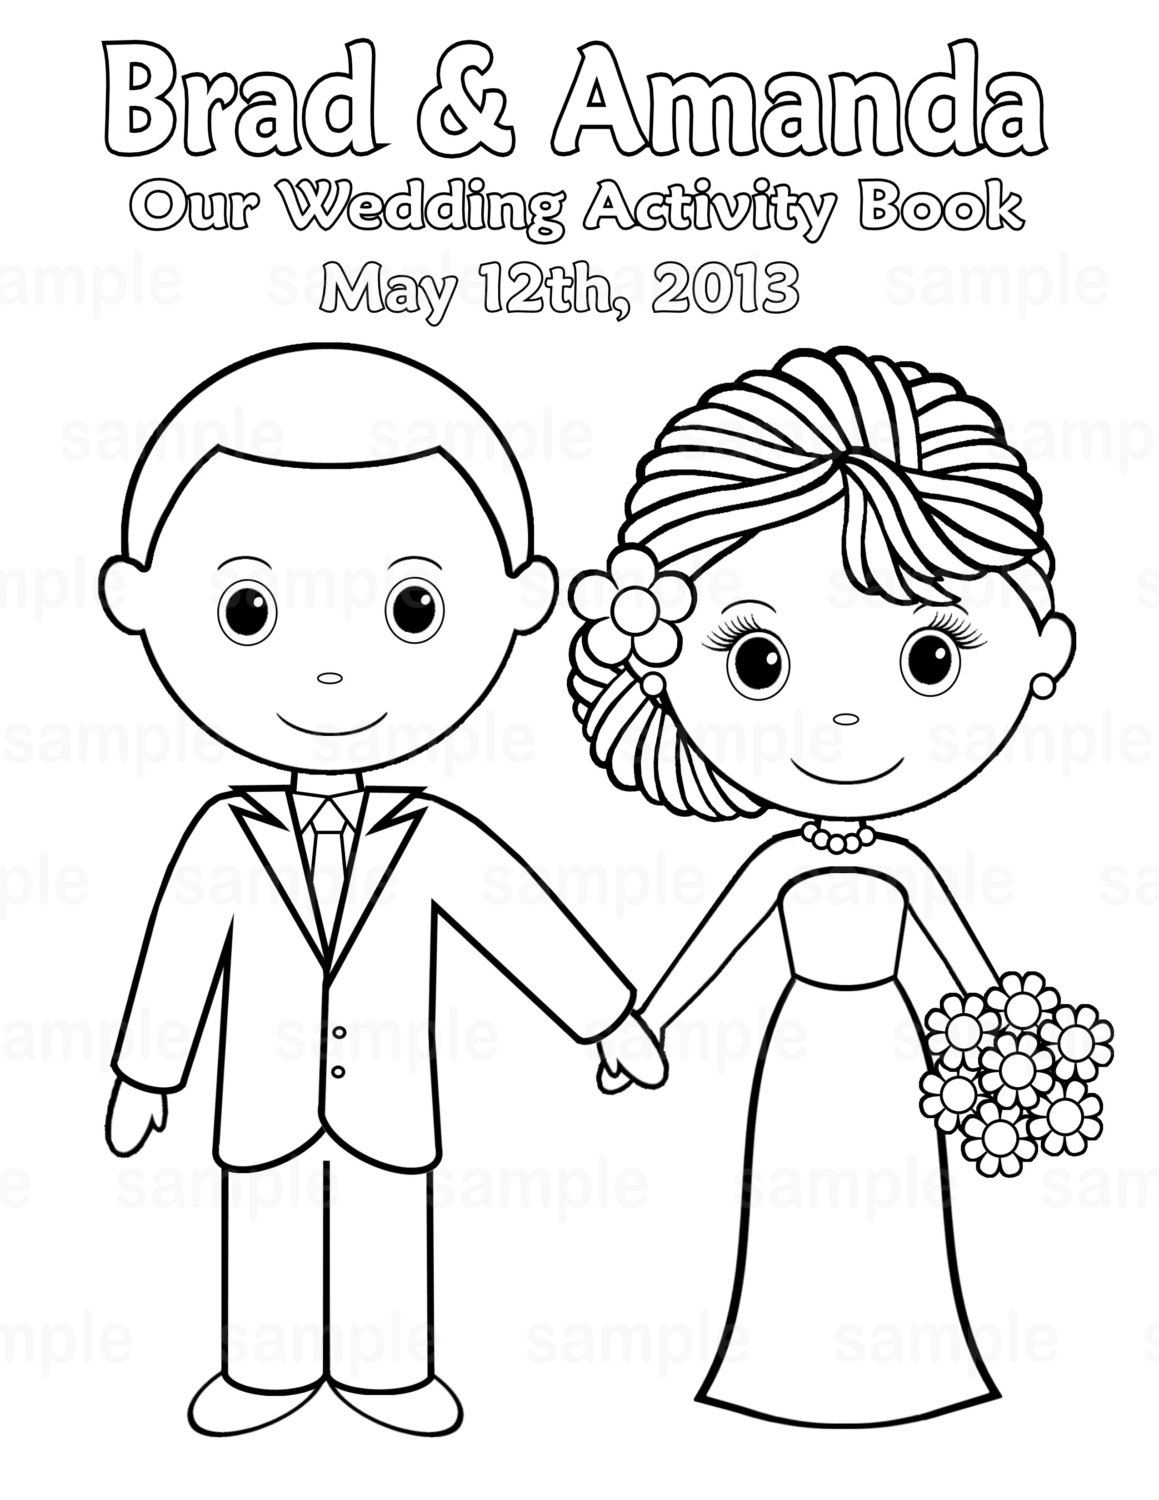 Printable Personalized Wedding Coloring Activity Book Favor Kids 8.5 - Free Printable Personalized Wedding Coloring Book